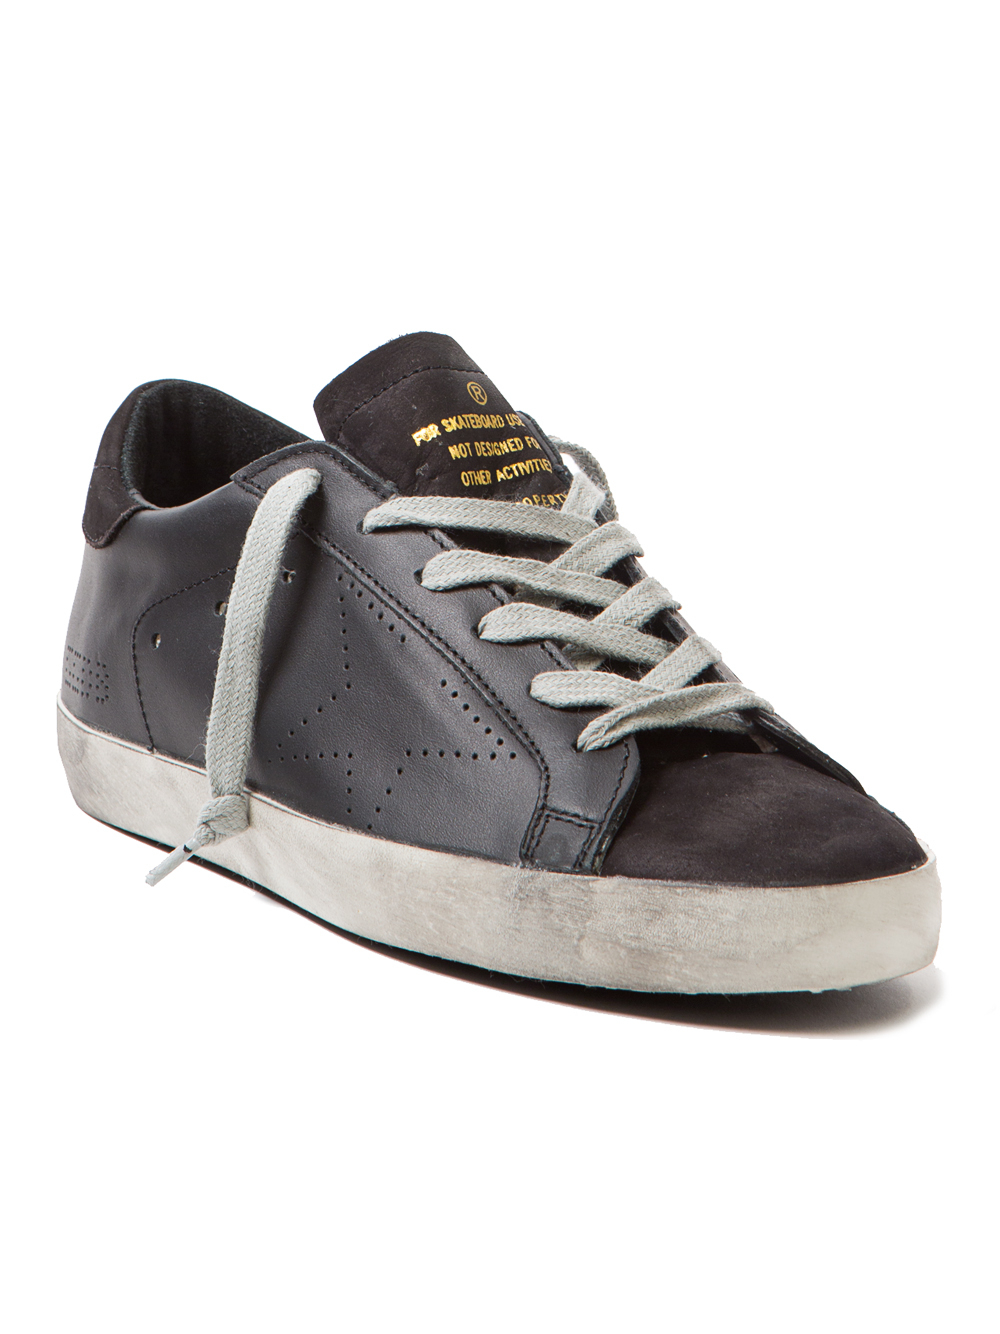 reputable site f73c3 228ca Lyst - Golden Goose Deluxe Brand Superstar Leather Low-Top Sneakers ...